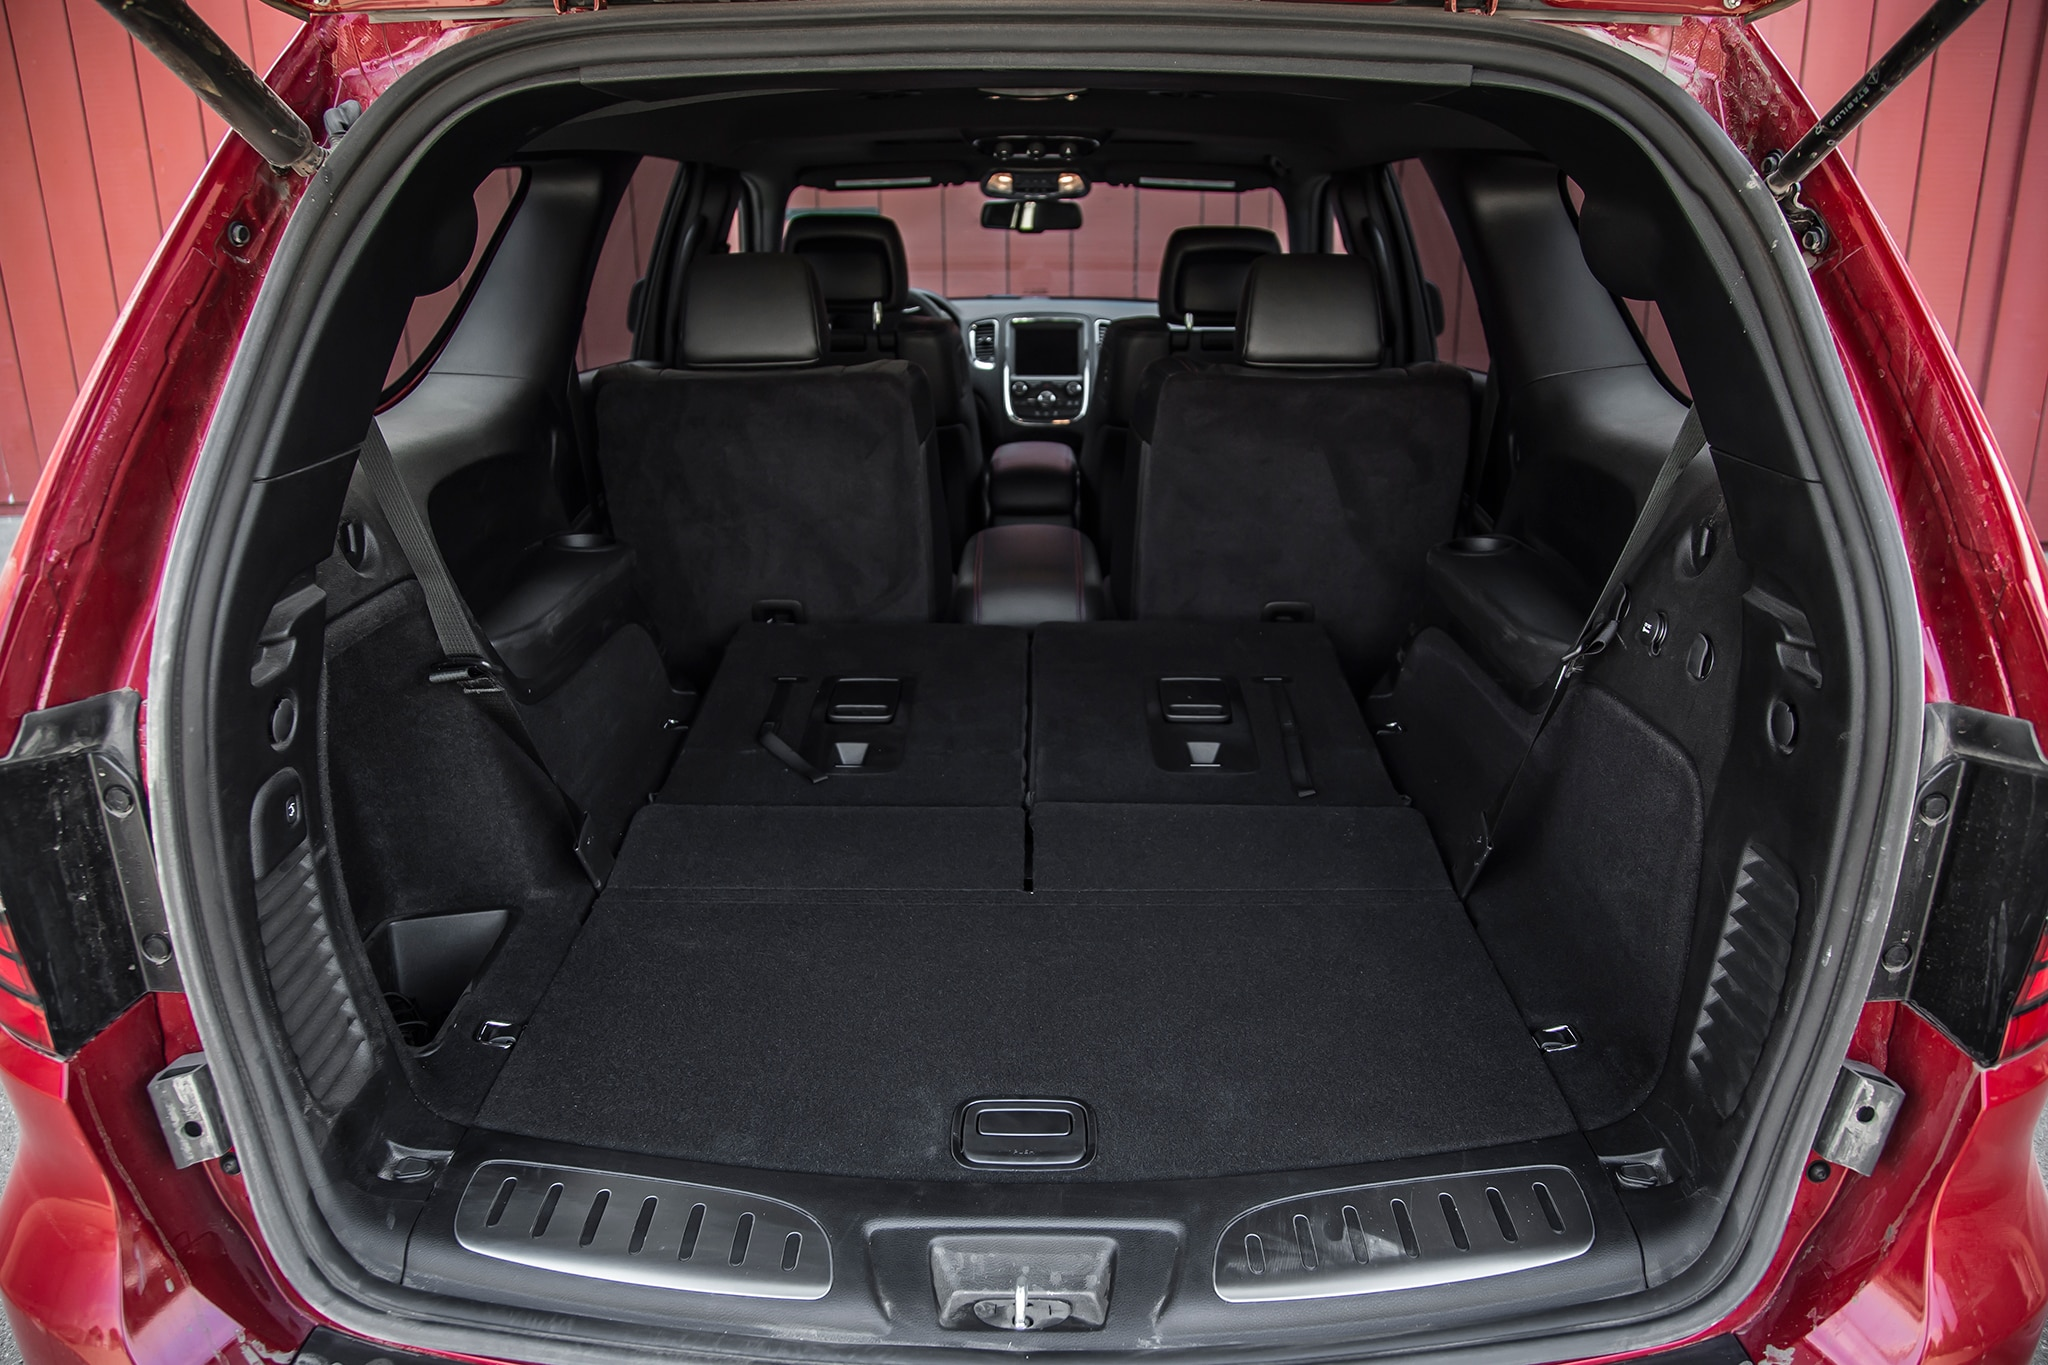 Dodge Durango Rt Cargo Space on 2006 Dodge Durango Interior